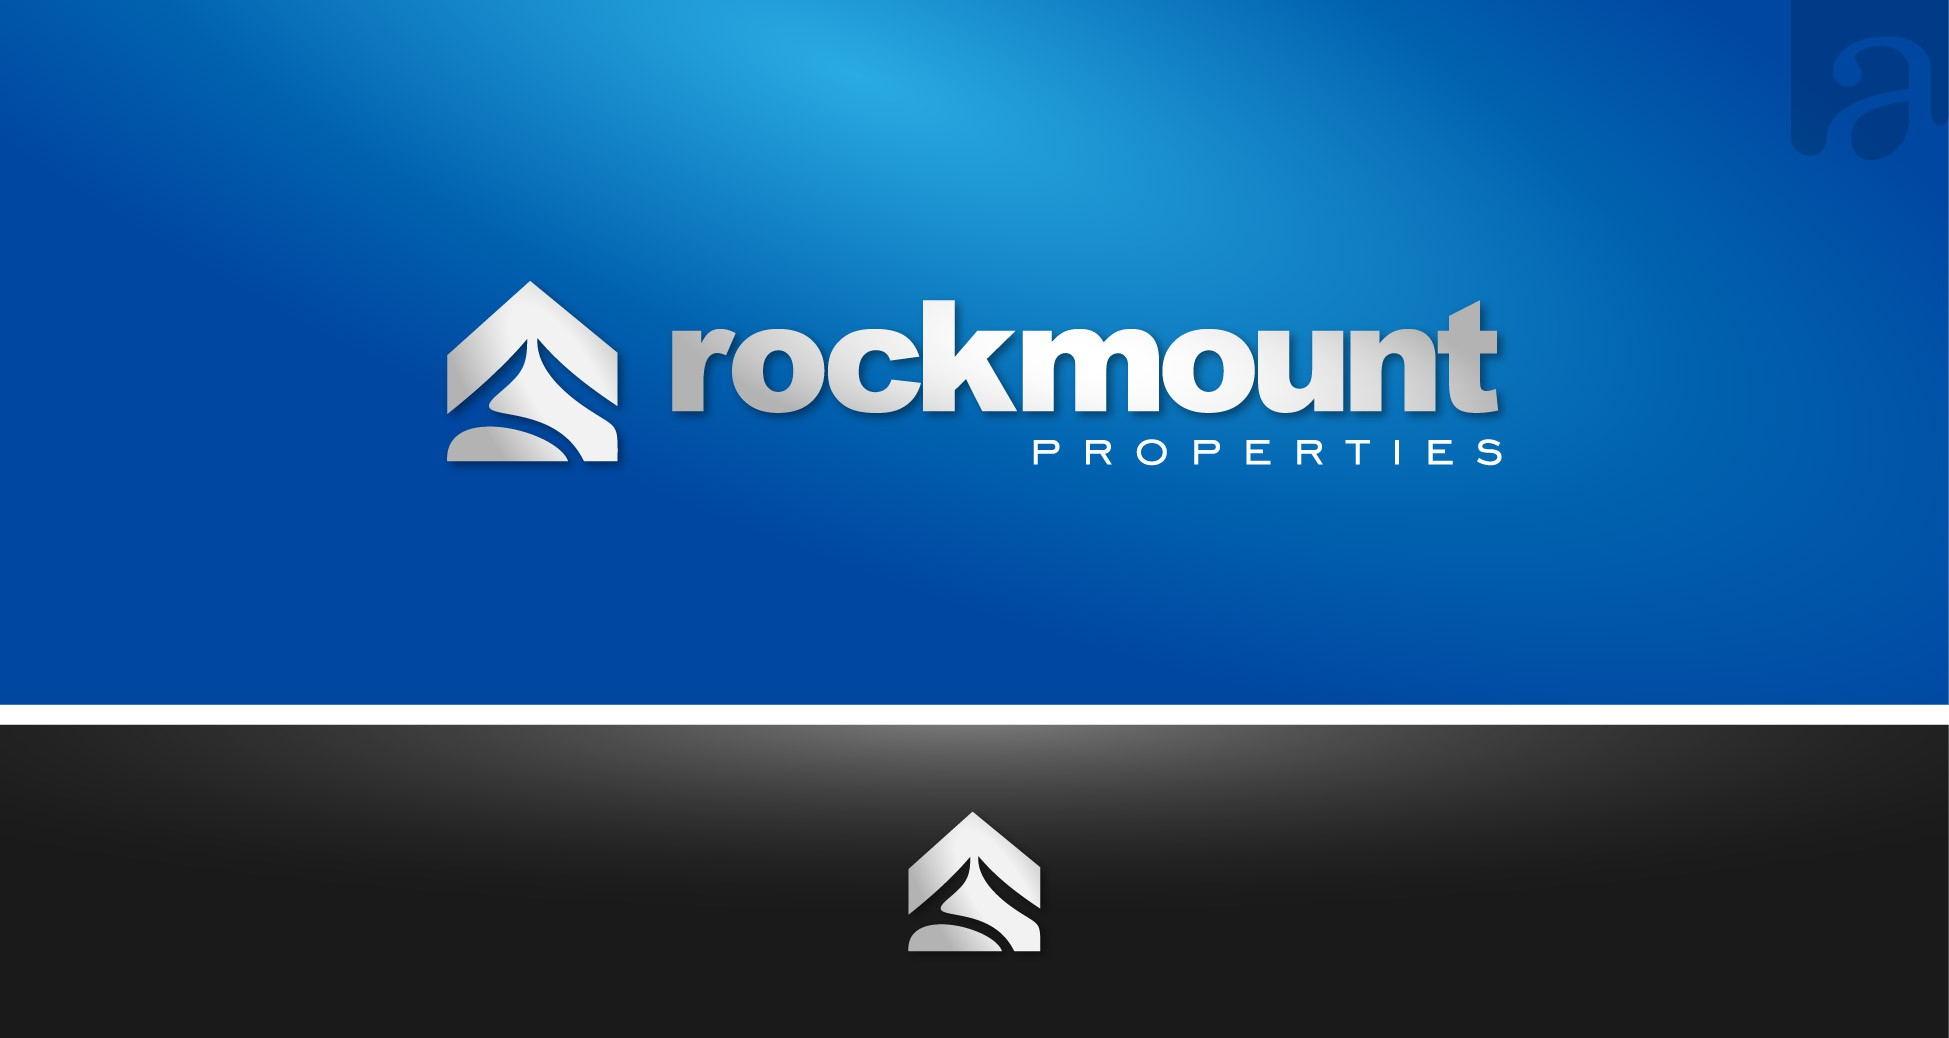 Help Rockmount Properties with a new logo